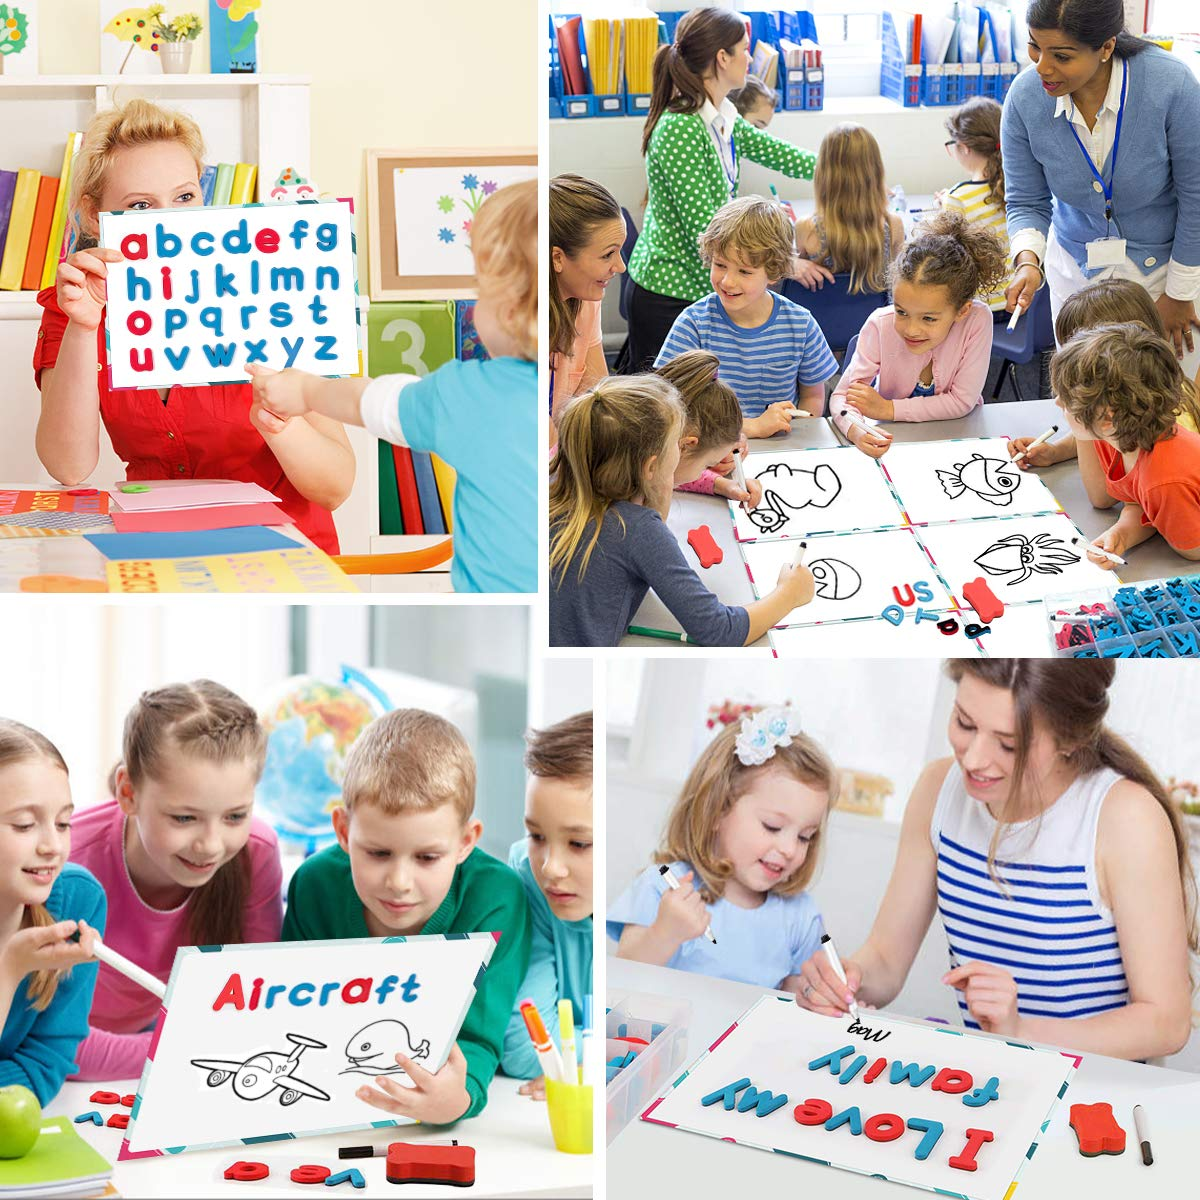 JONYJ Foam Magnetic Letters, Magnetic Alphabet Letters Board with Storage Box, 208 Pcs ABC Uppercase Lowercase Alphabet Magnets for Kids Spelling and Learning - Classroom & Home Education by JONYJ (Image #6)